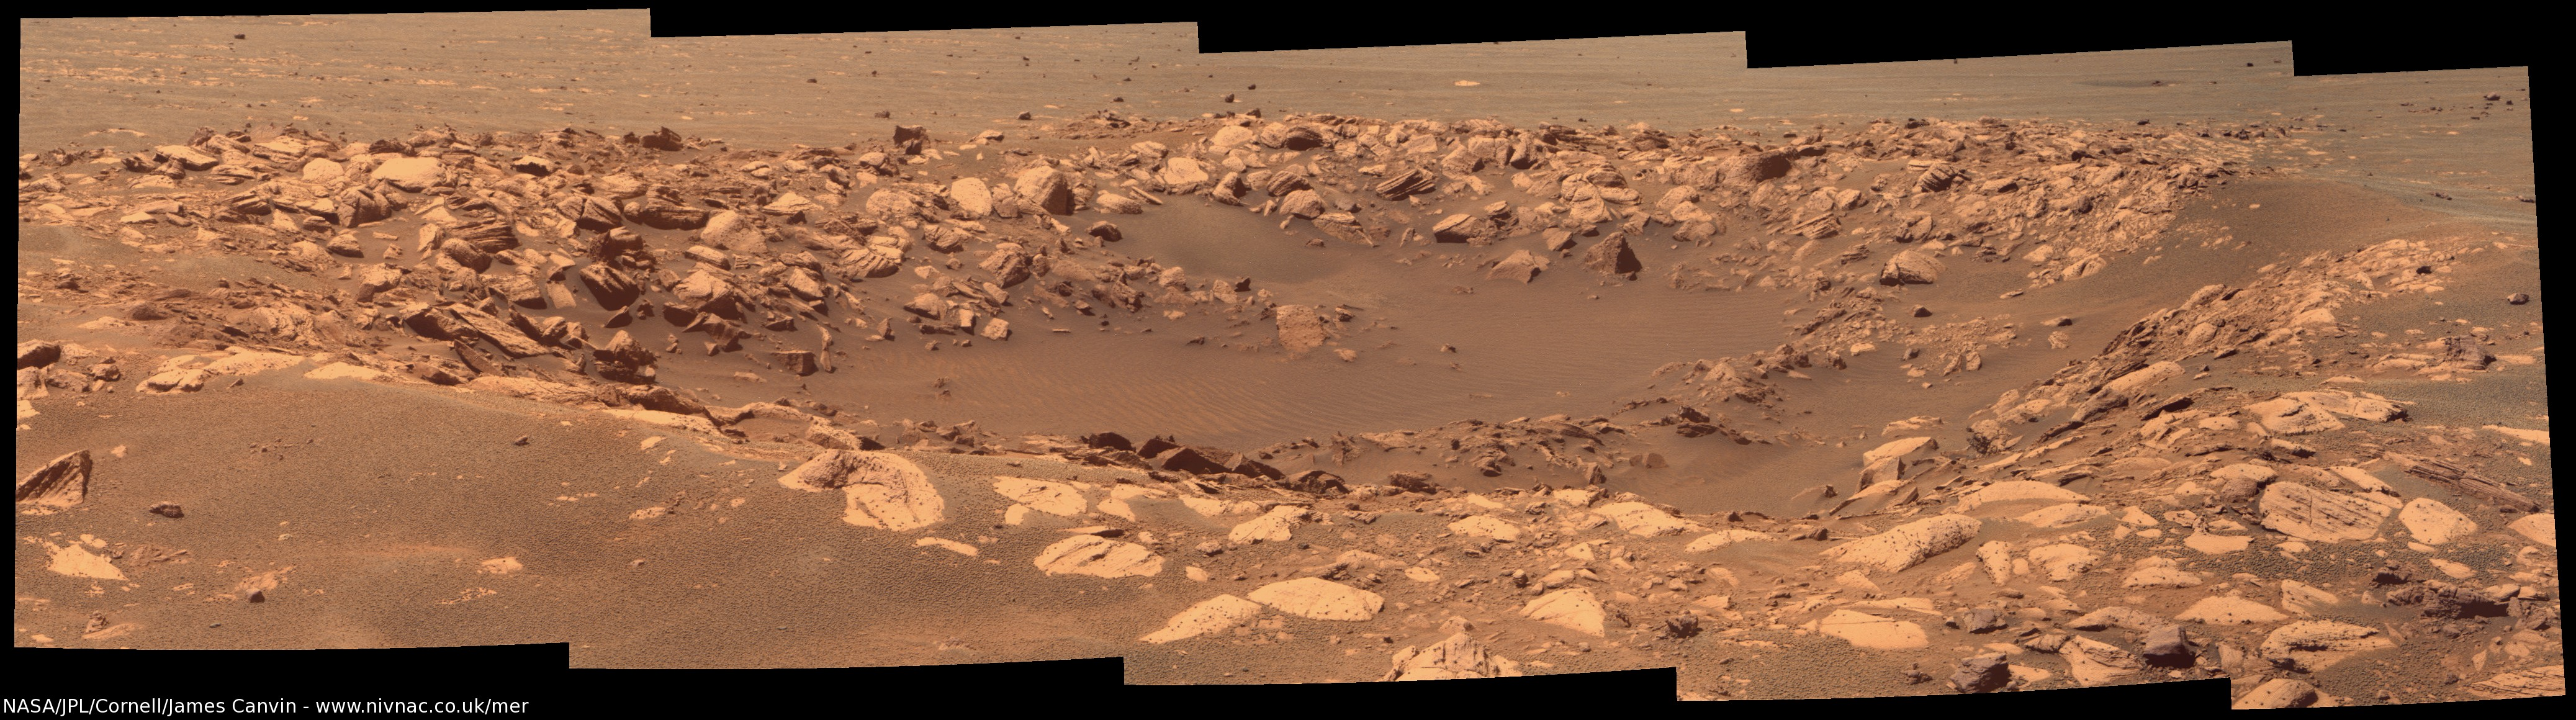 Actual Photos of Mars Surface (page 4) - Pics about space